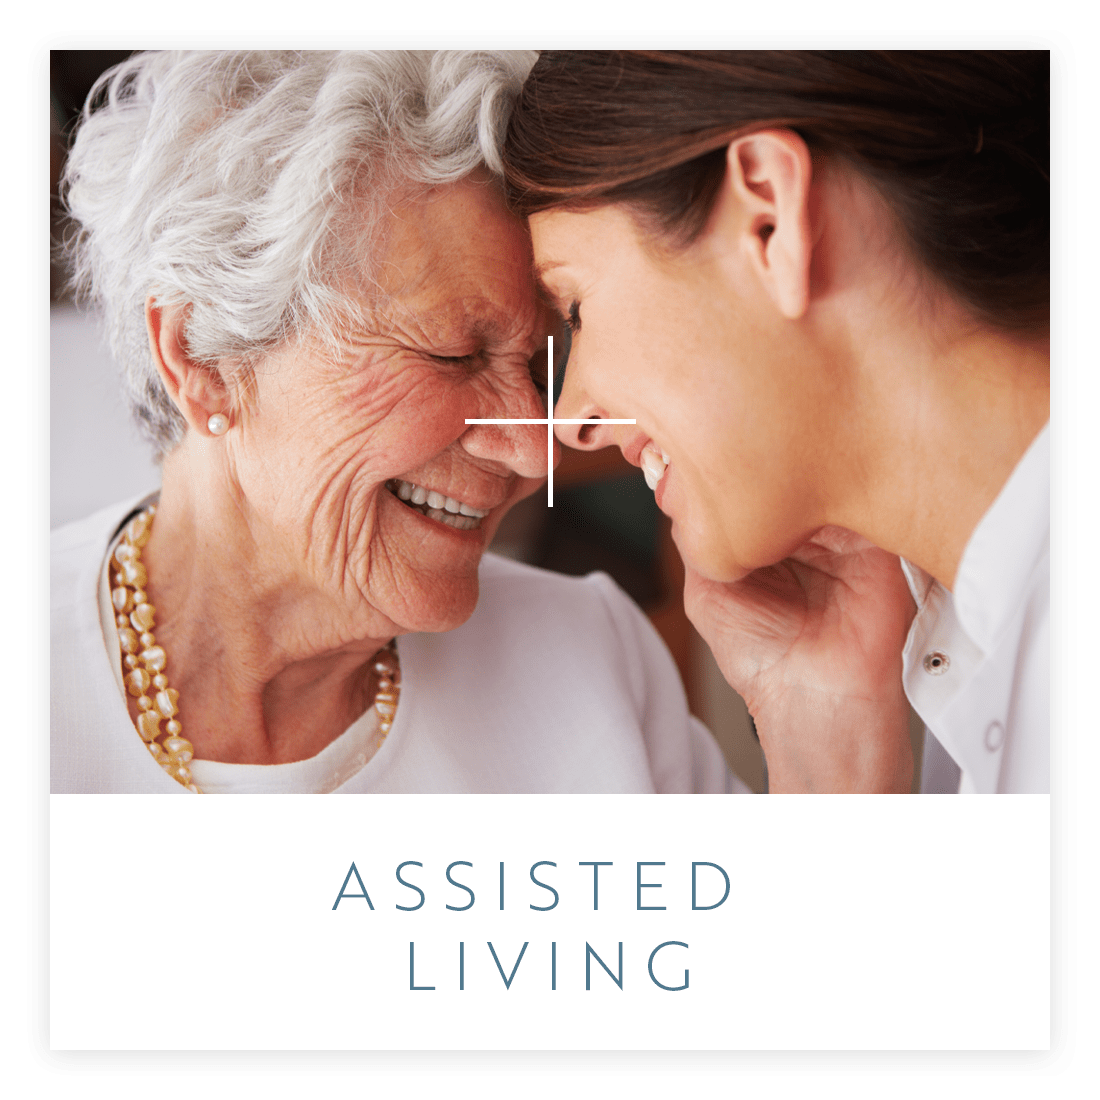 View our Assisted Living services at The Meridian at Boca Raton in Boca Raton, Florida